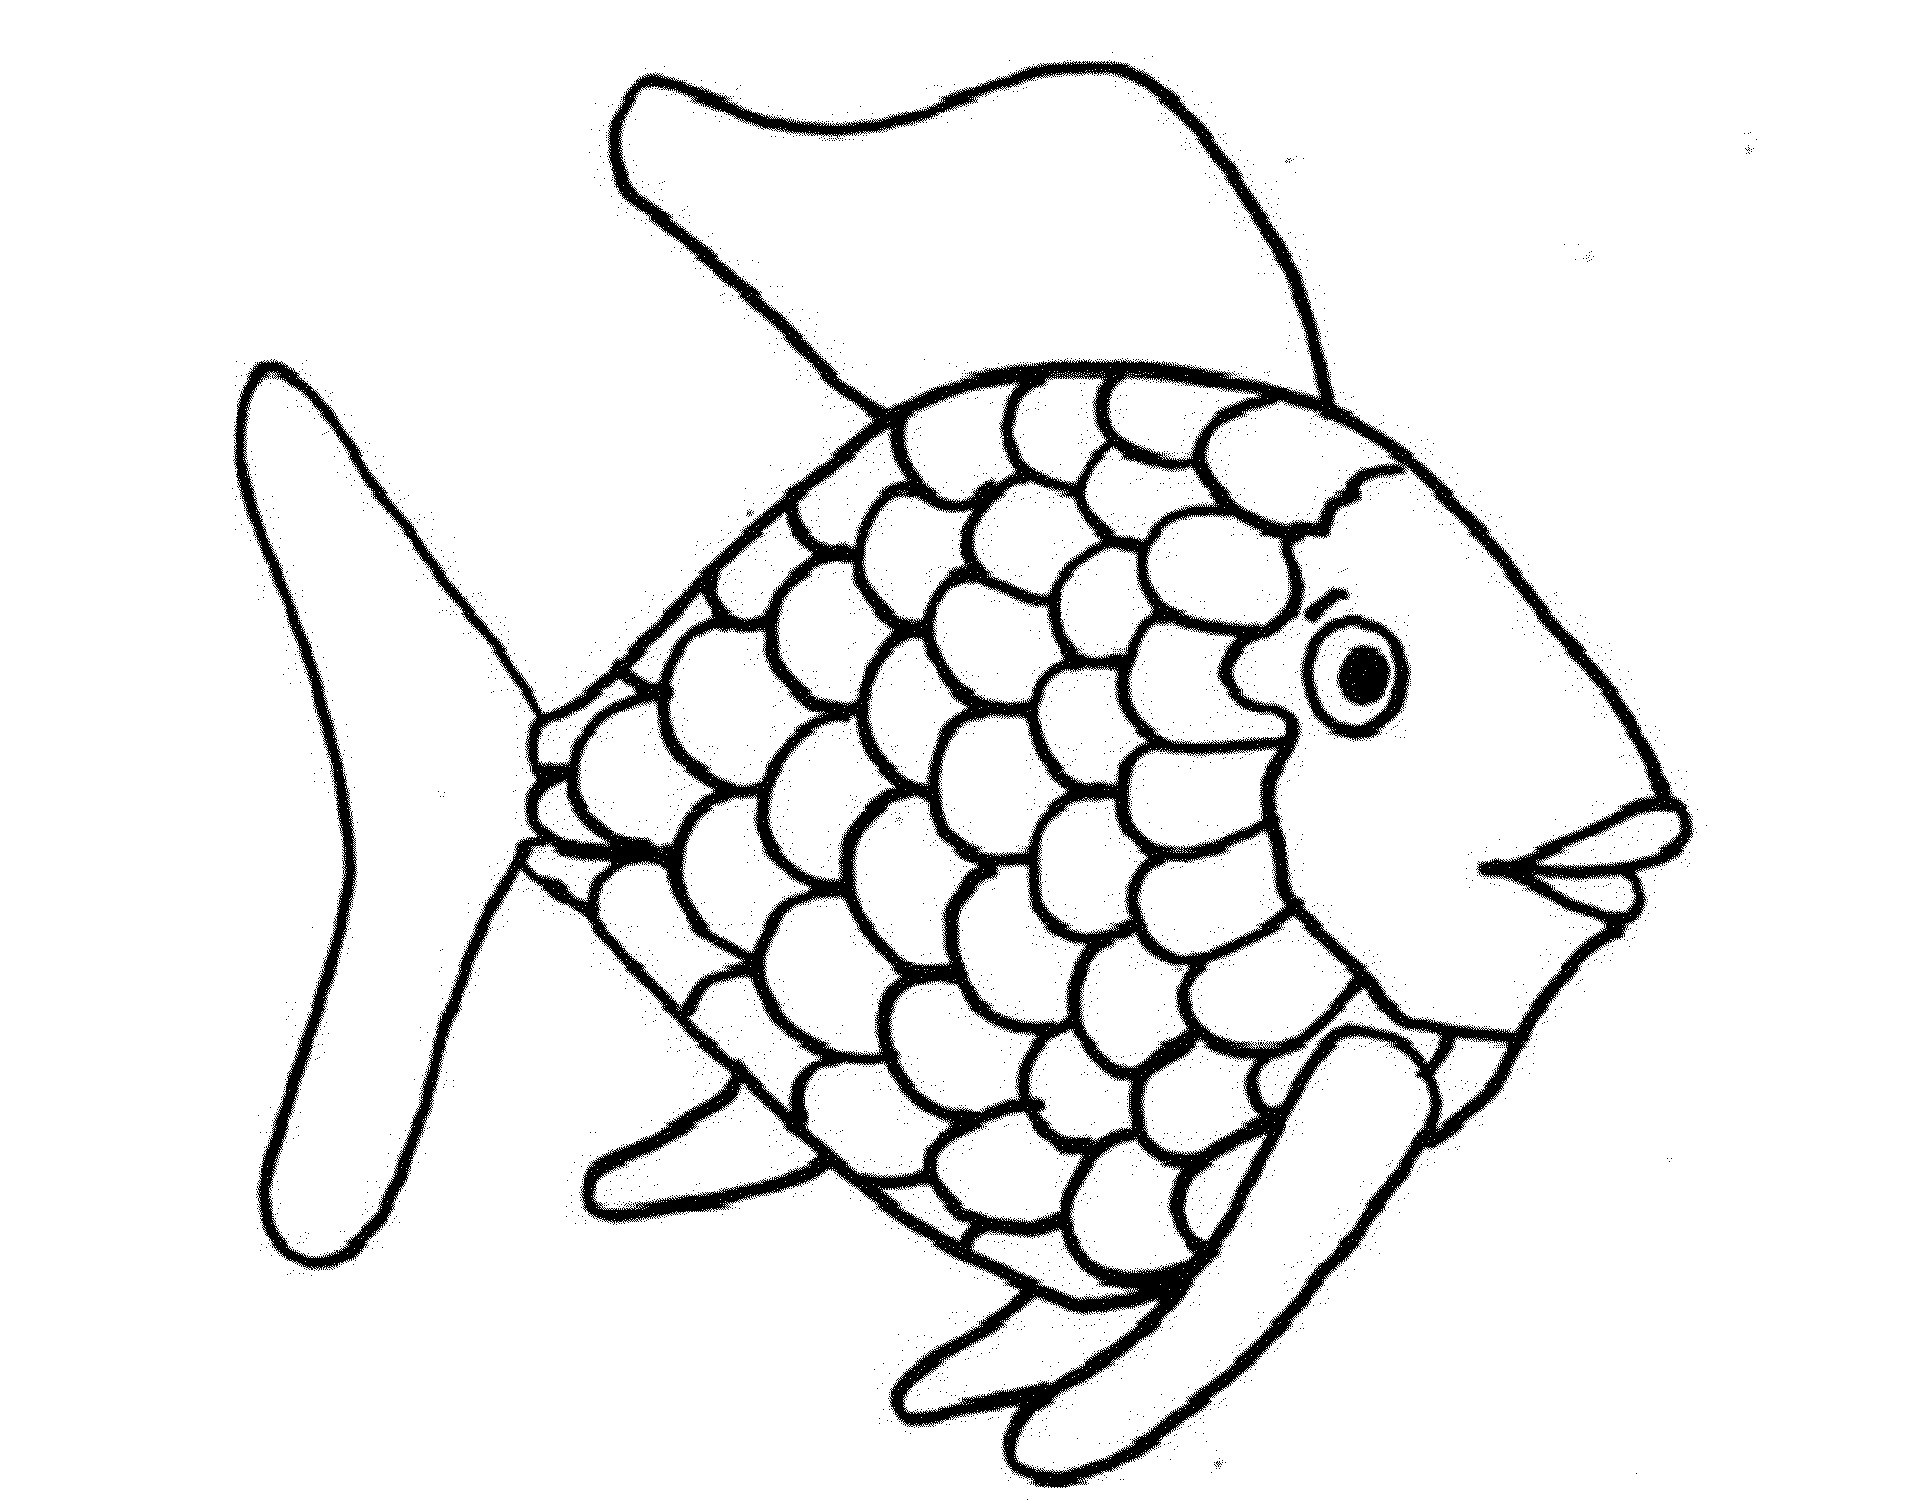 Fun Fish Color Sheet for Kids | 101 Activity